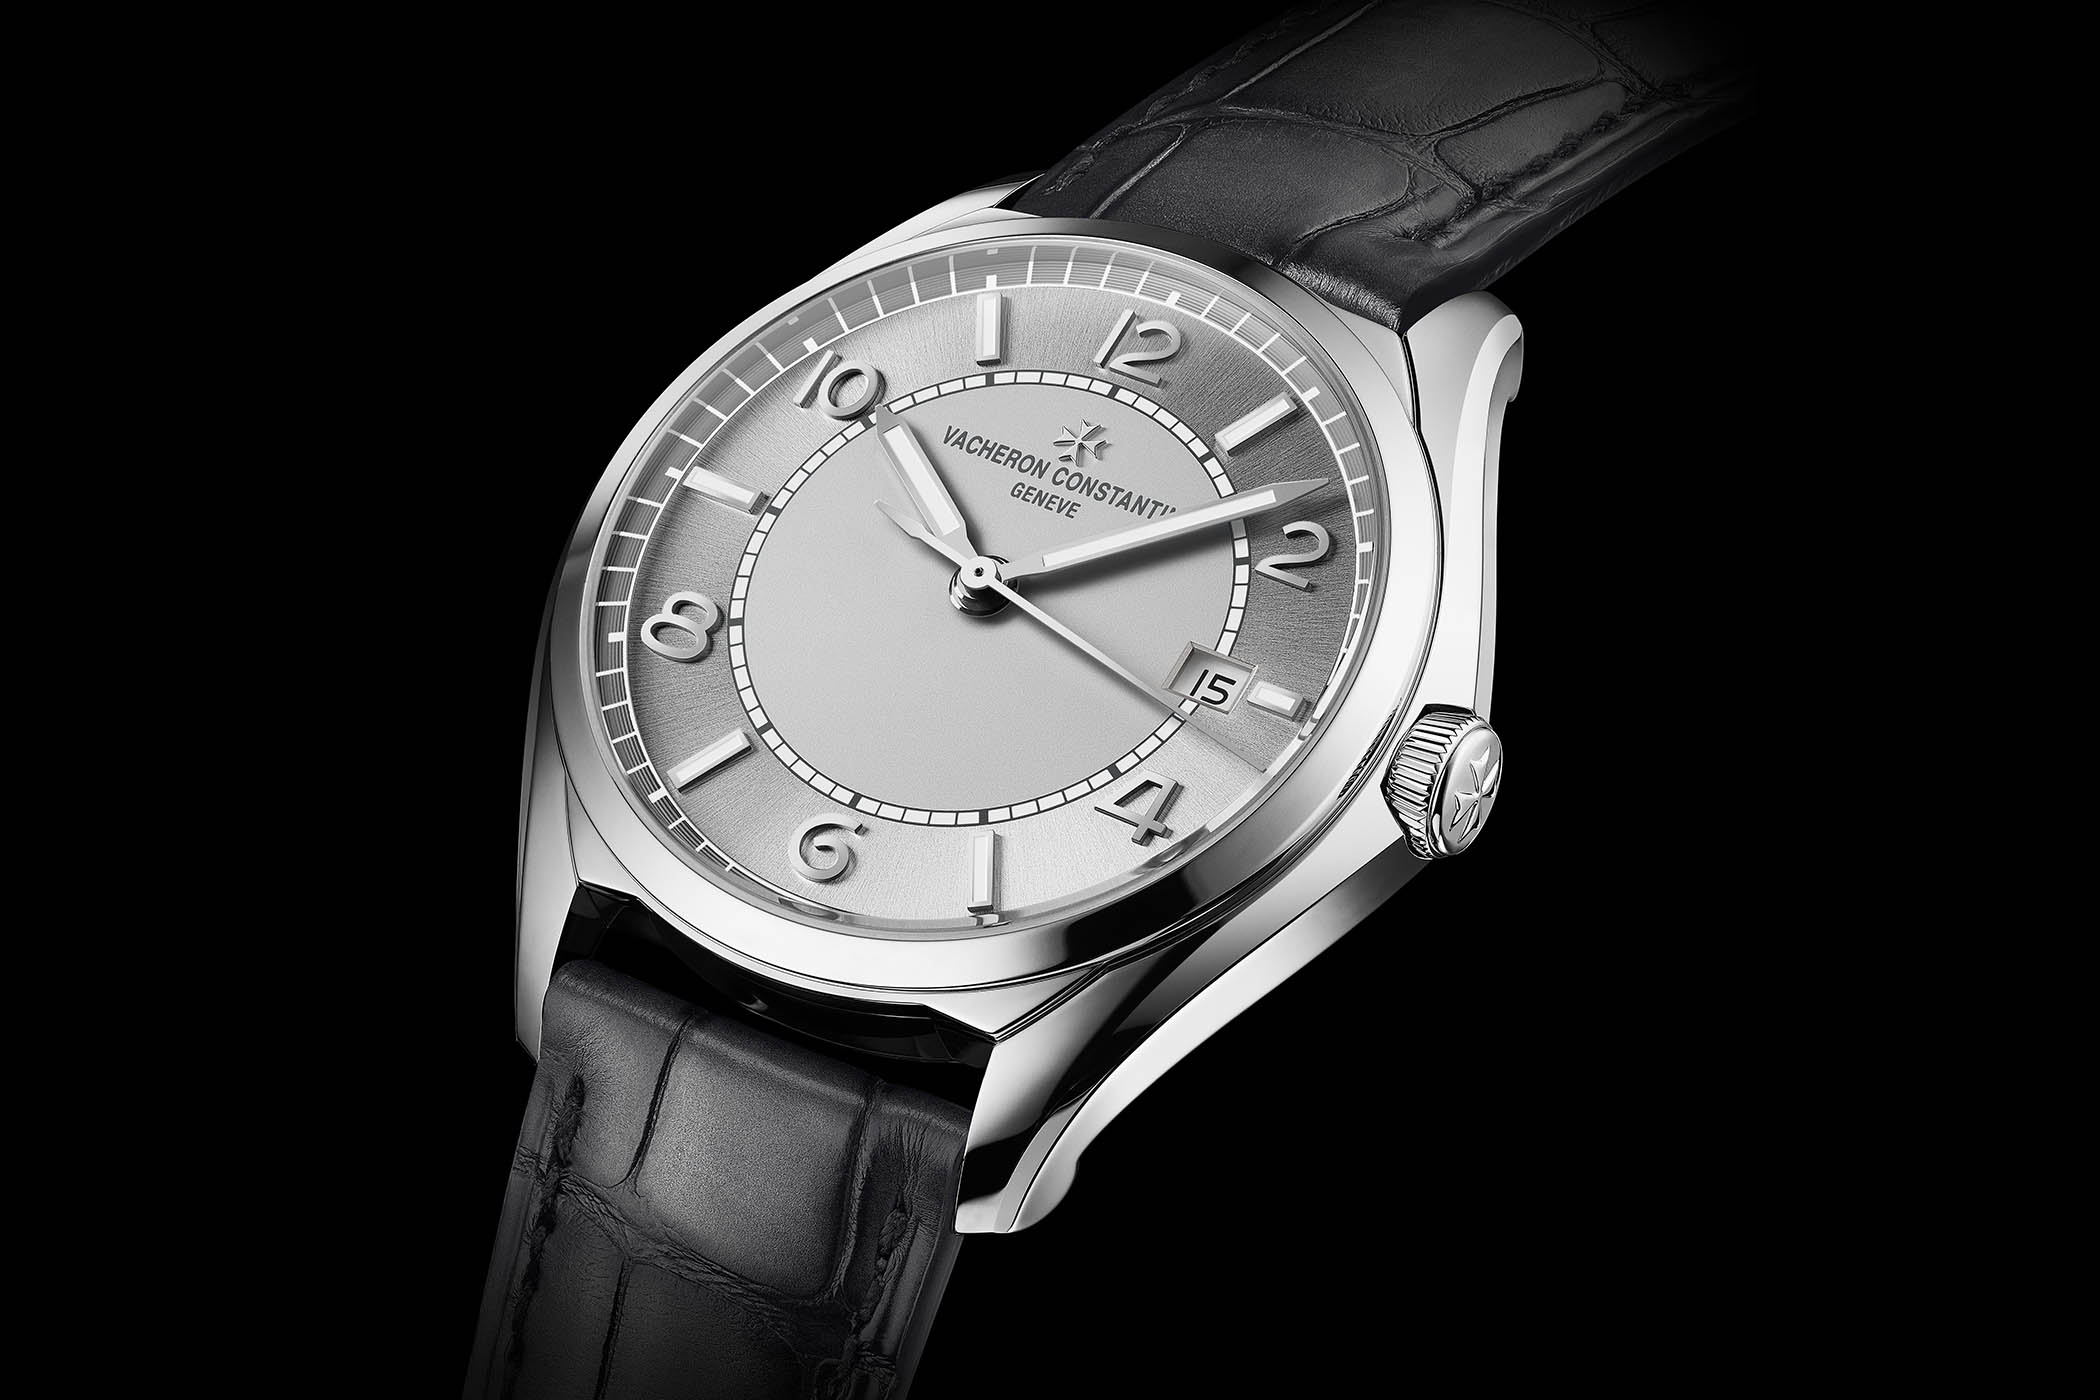 Vacheron Constantin FIFTYSIX collection entry-level - SIHH 2018